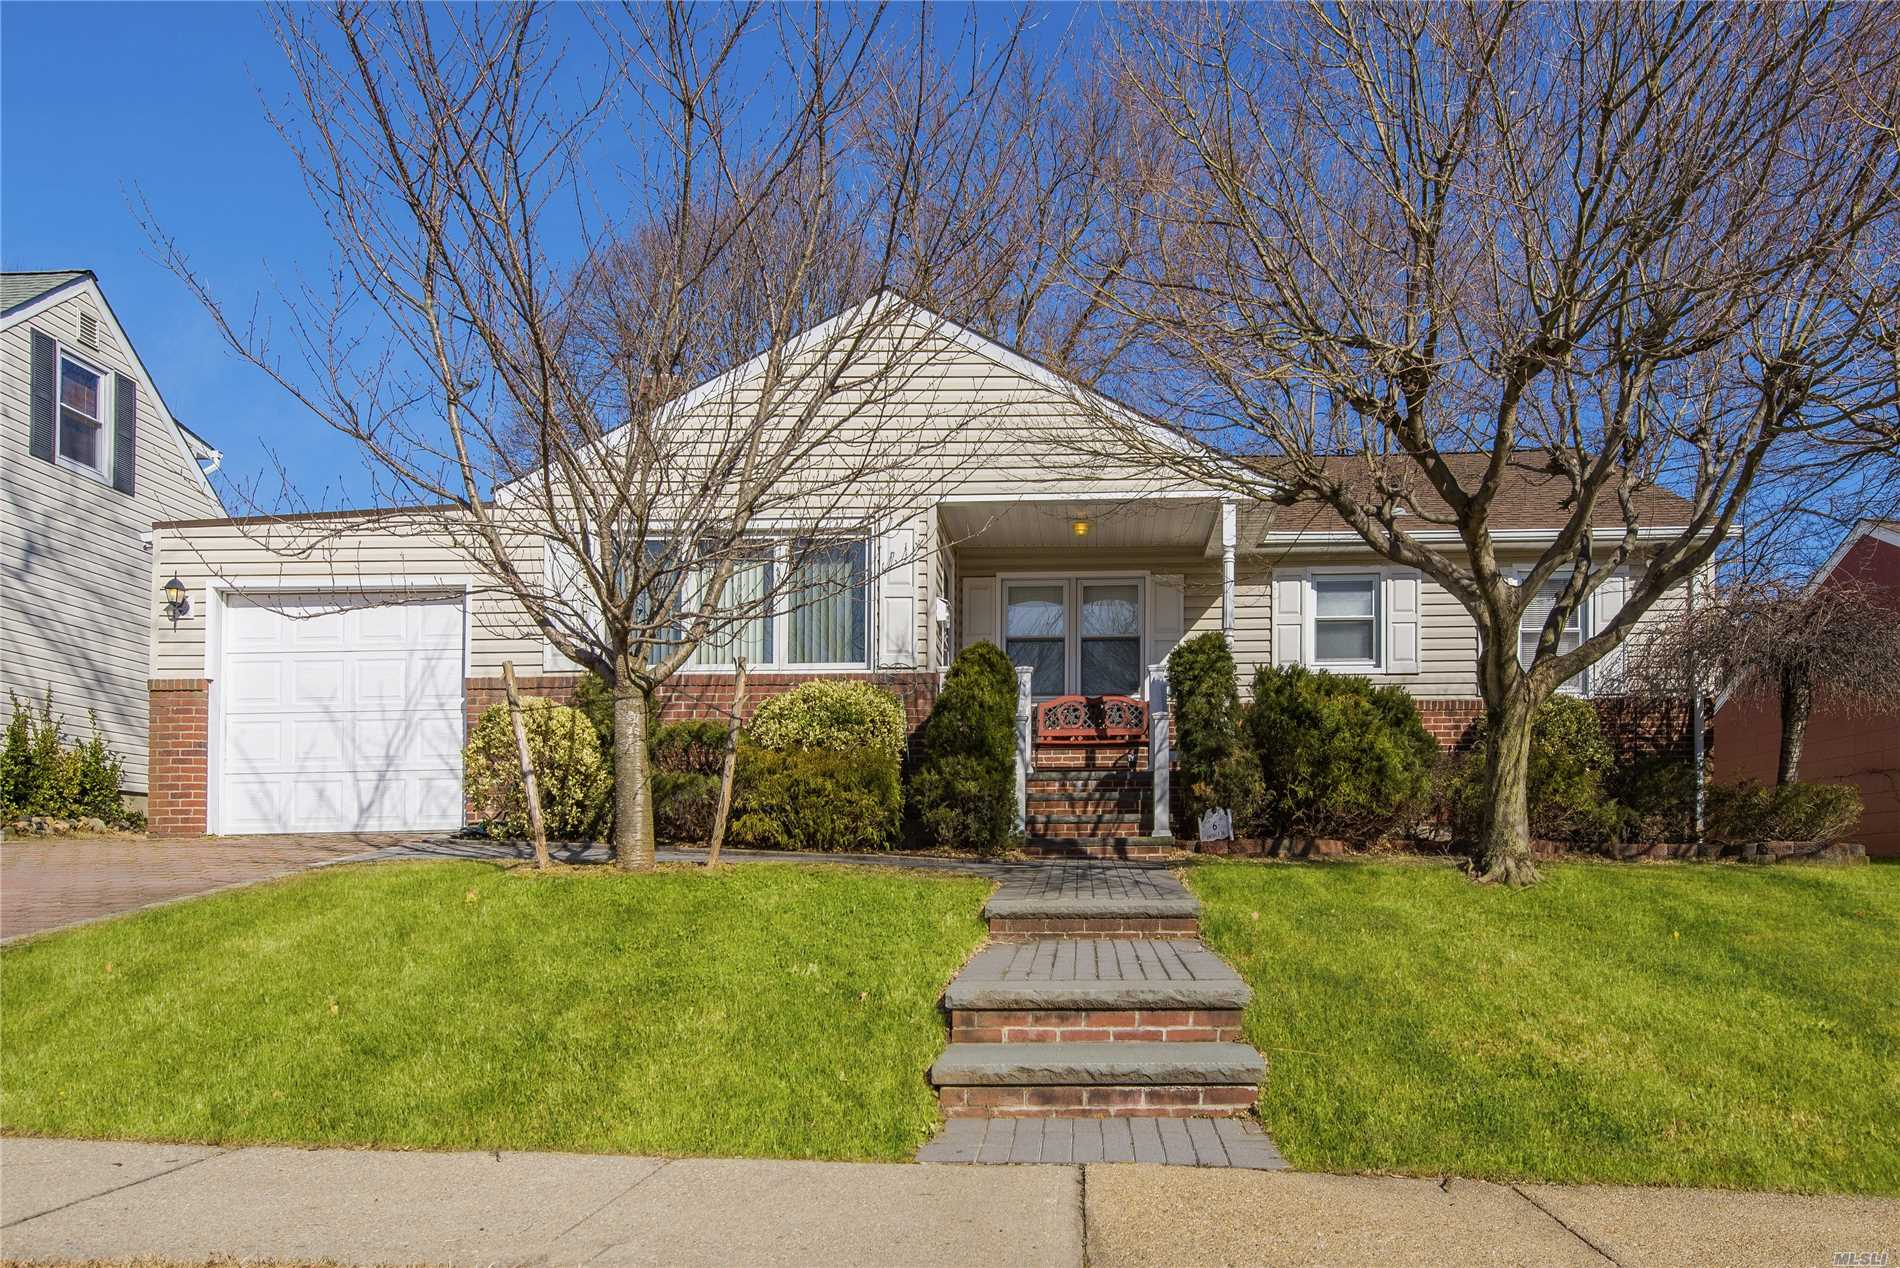 Immaculate Expanded Ranch- 3 To 4 Bedrooms, Hard Wood Floors Throughout- Solid Wood Doors, Room For Expanded Family